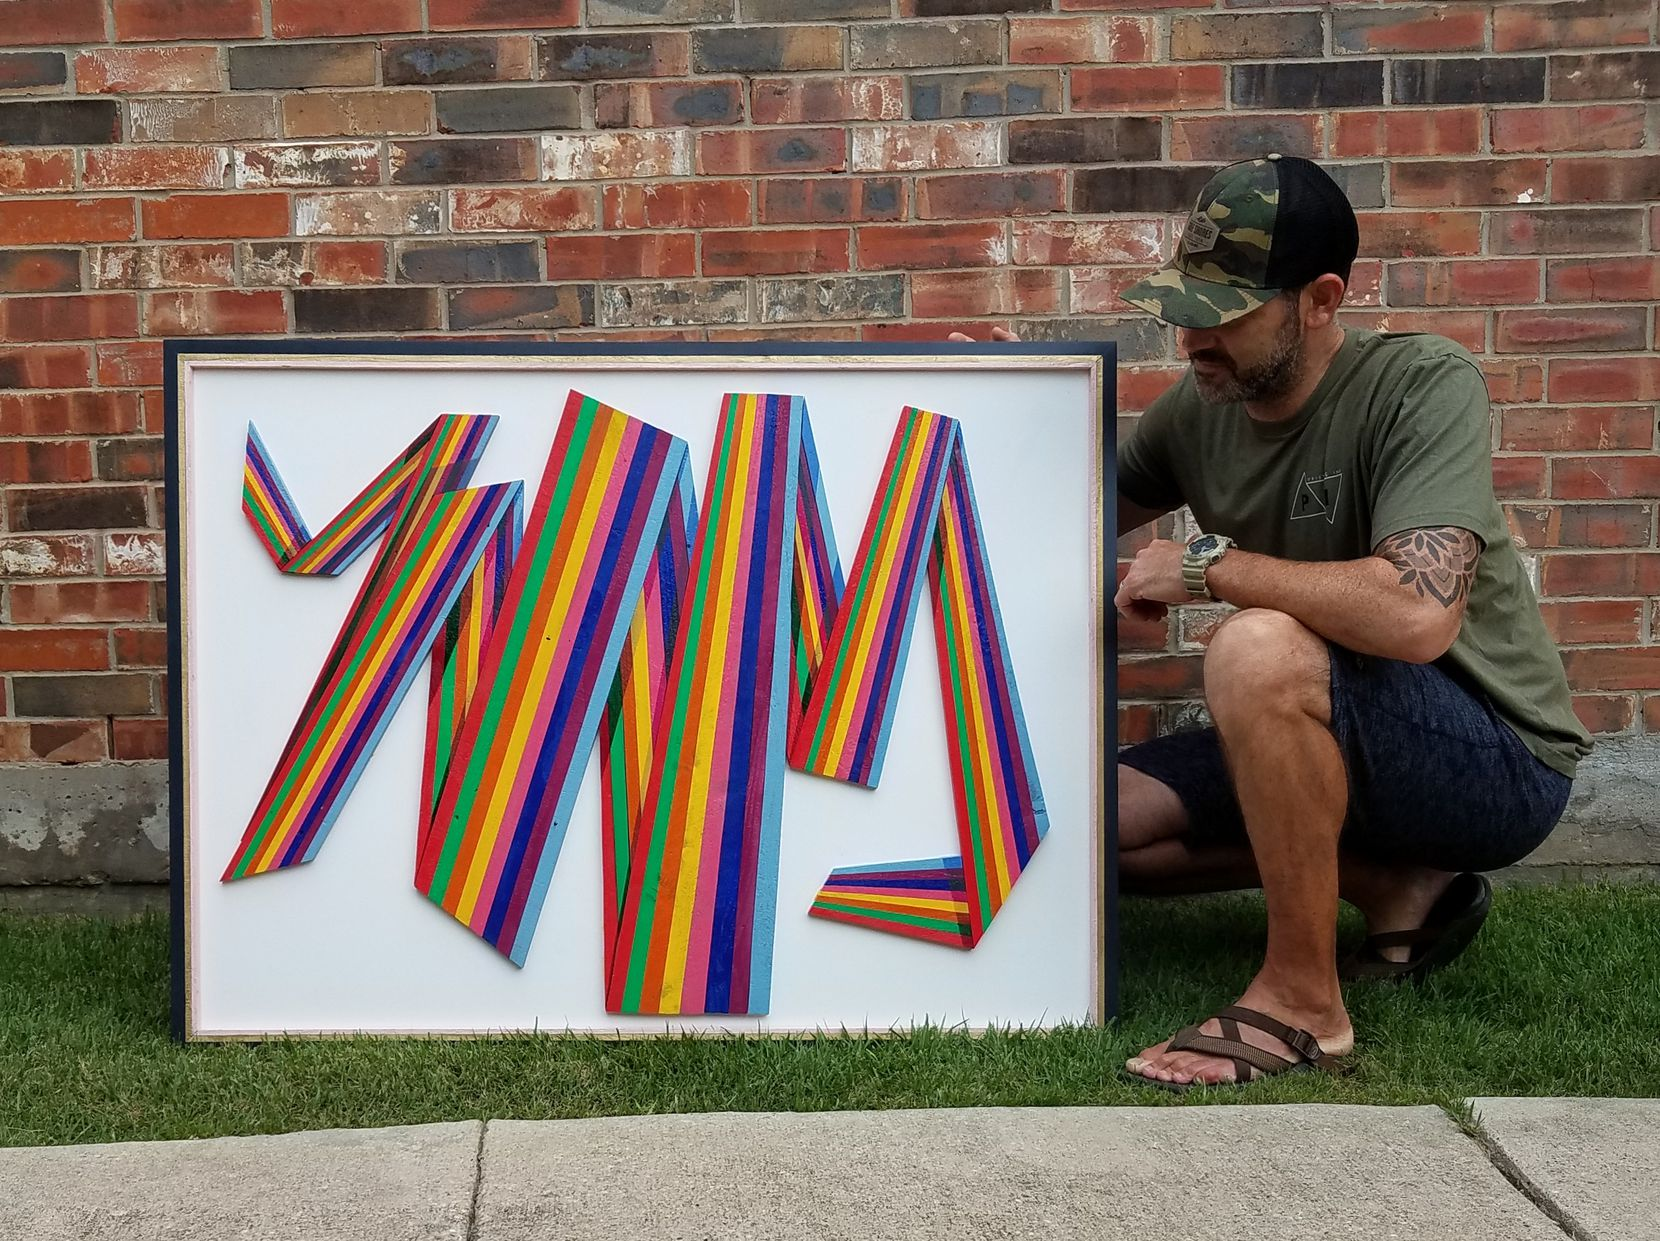 Ryan Ekmark used art as an outlet that helped him on his road to recovery and sobriety. He has since turned his wood art into a business named Recovered Calling.